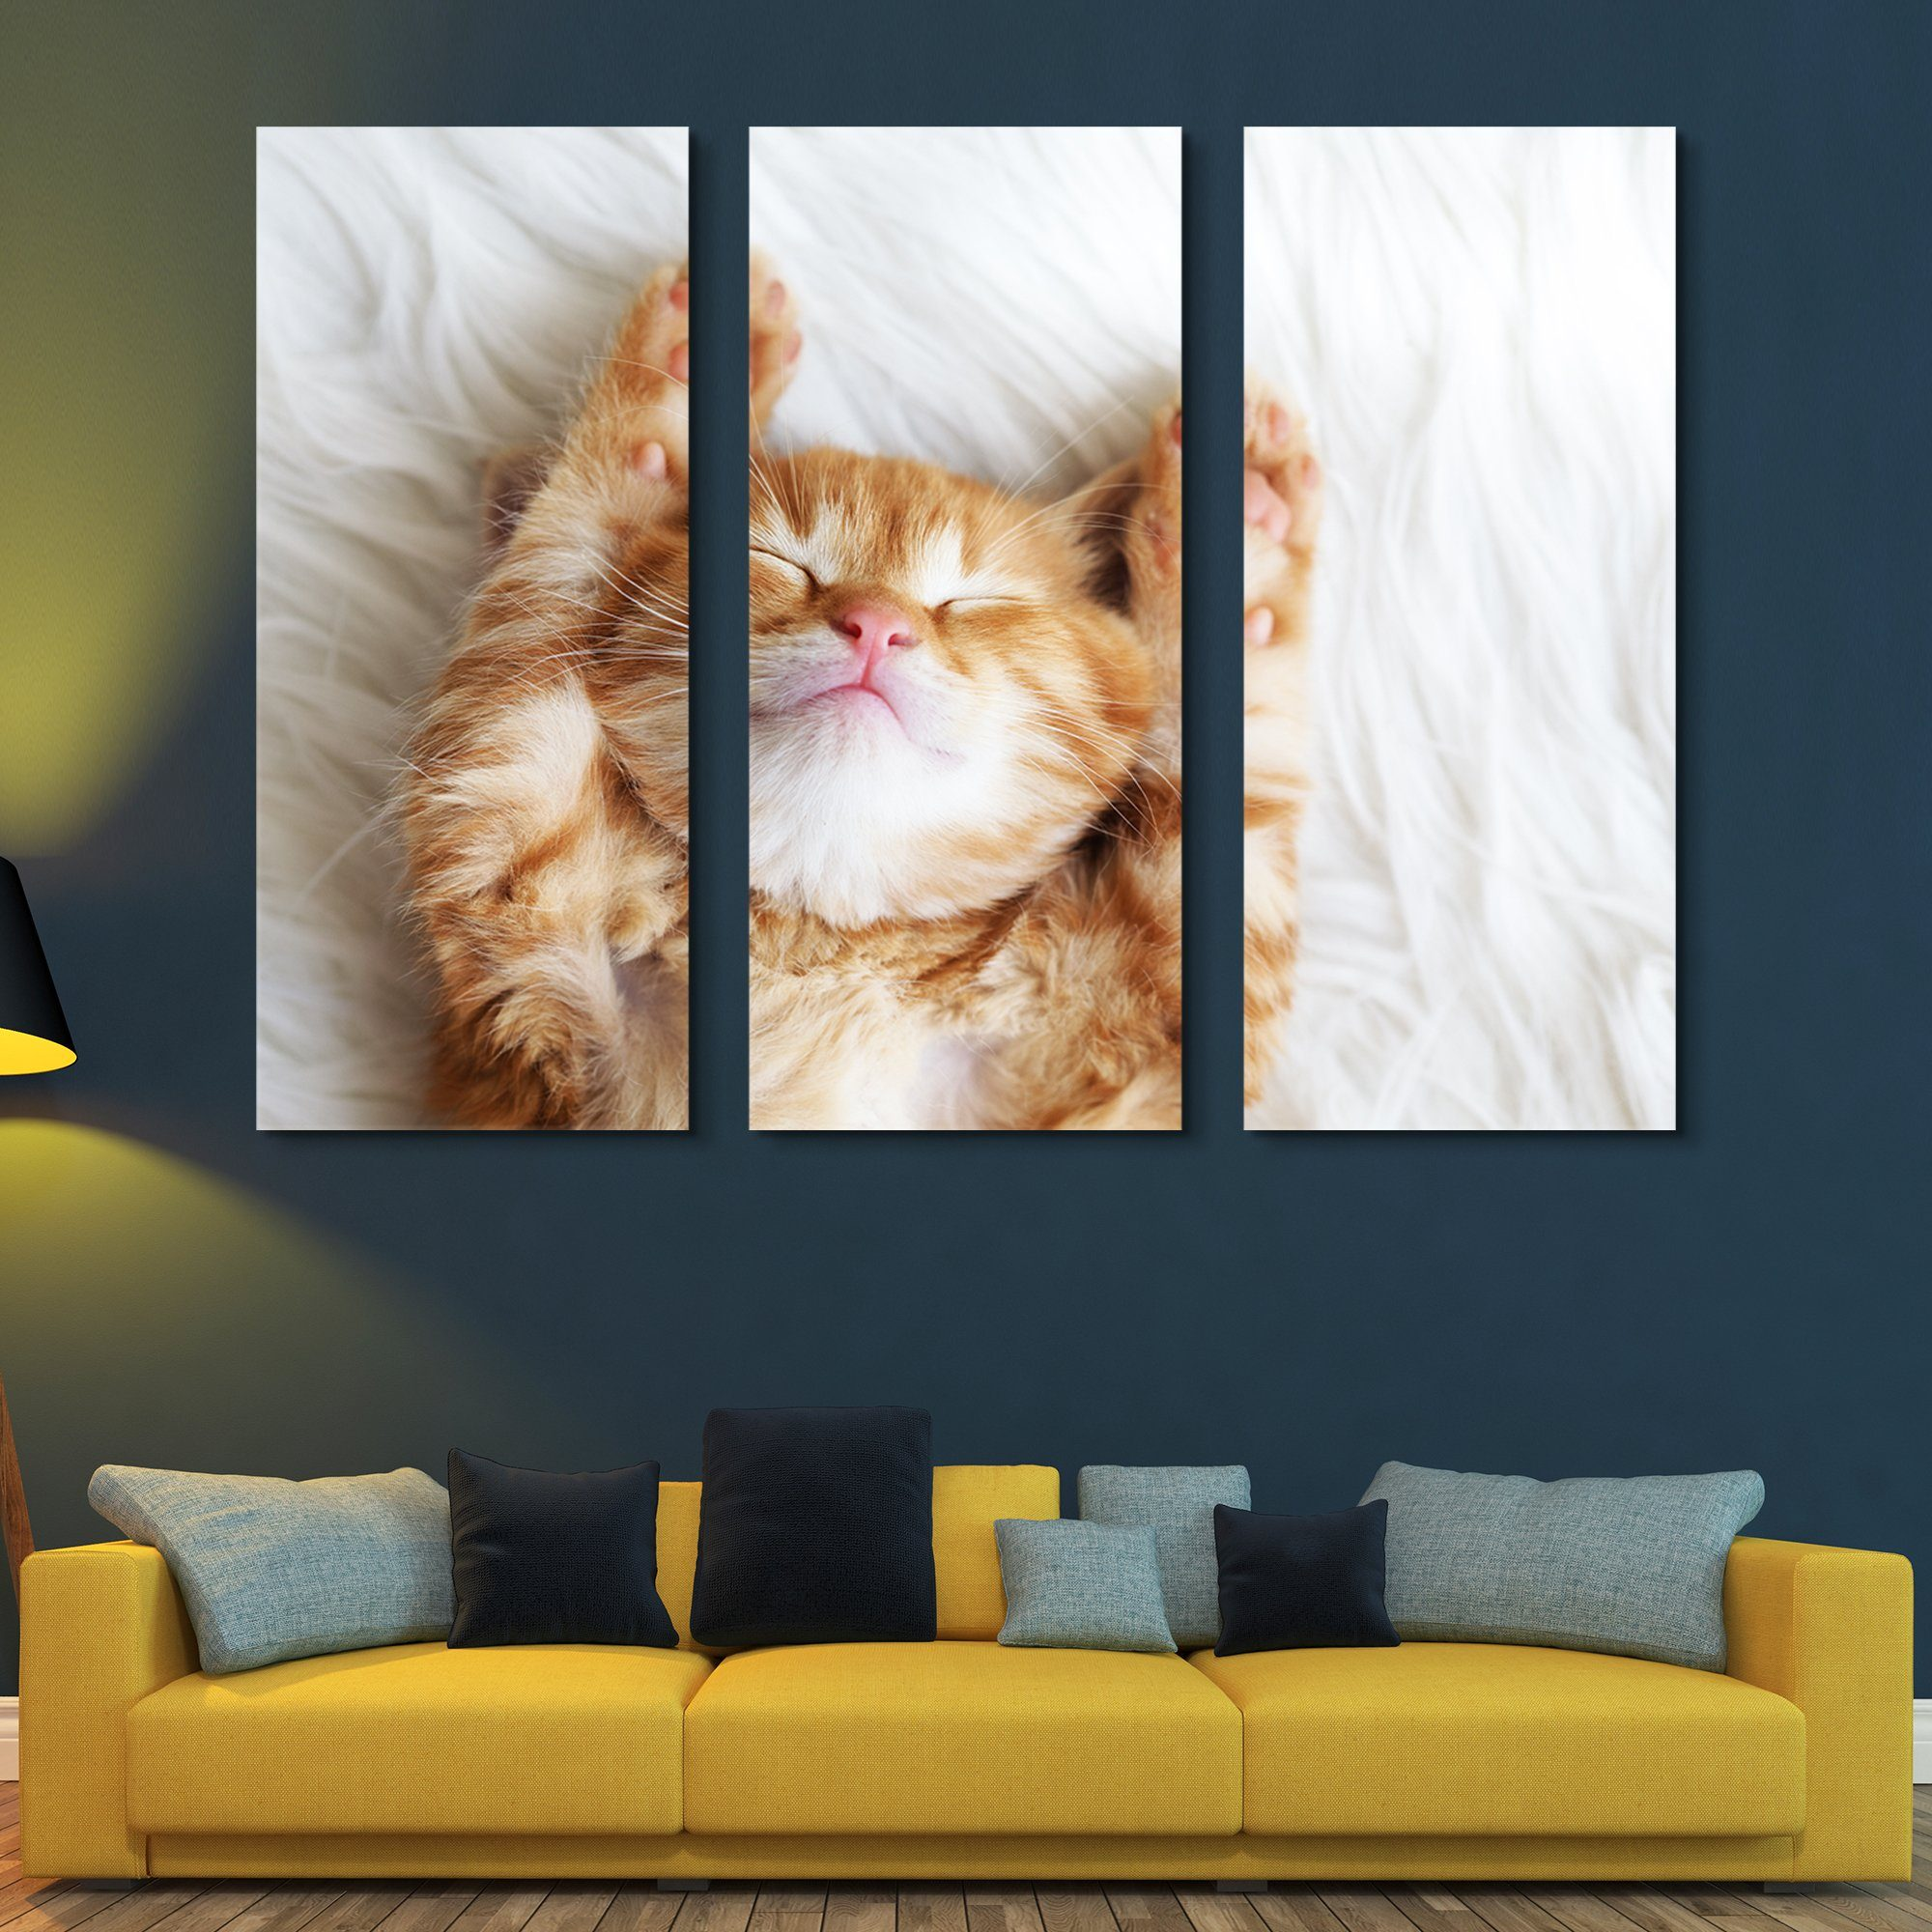 3 piece Sleeping Kitten wall art